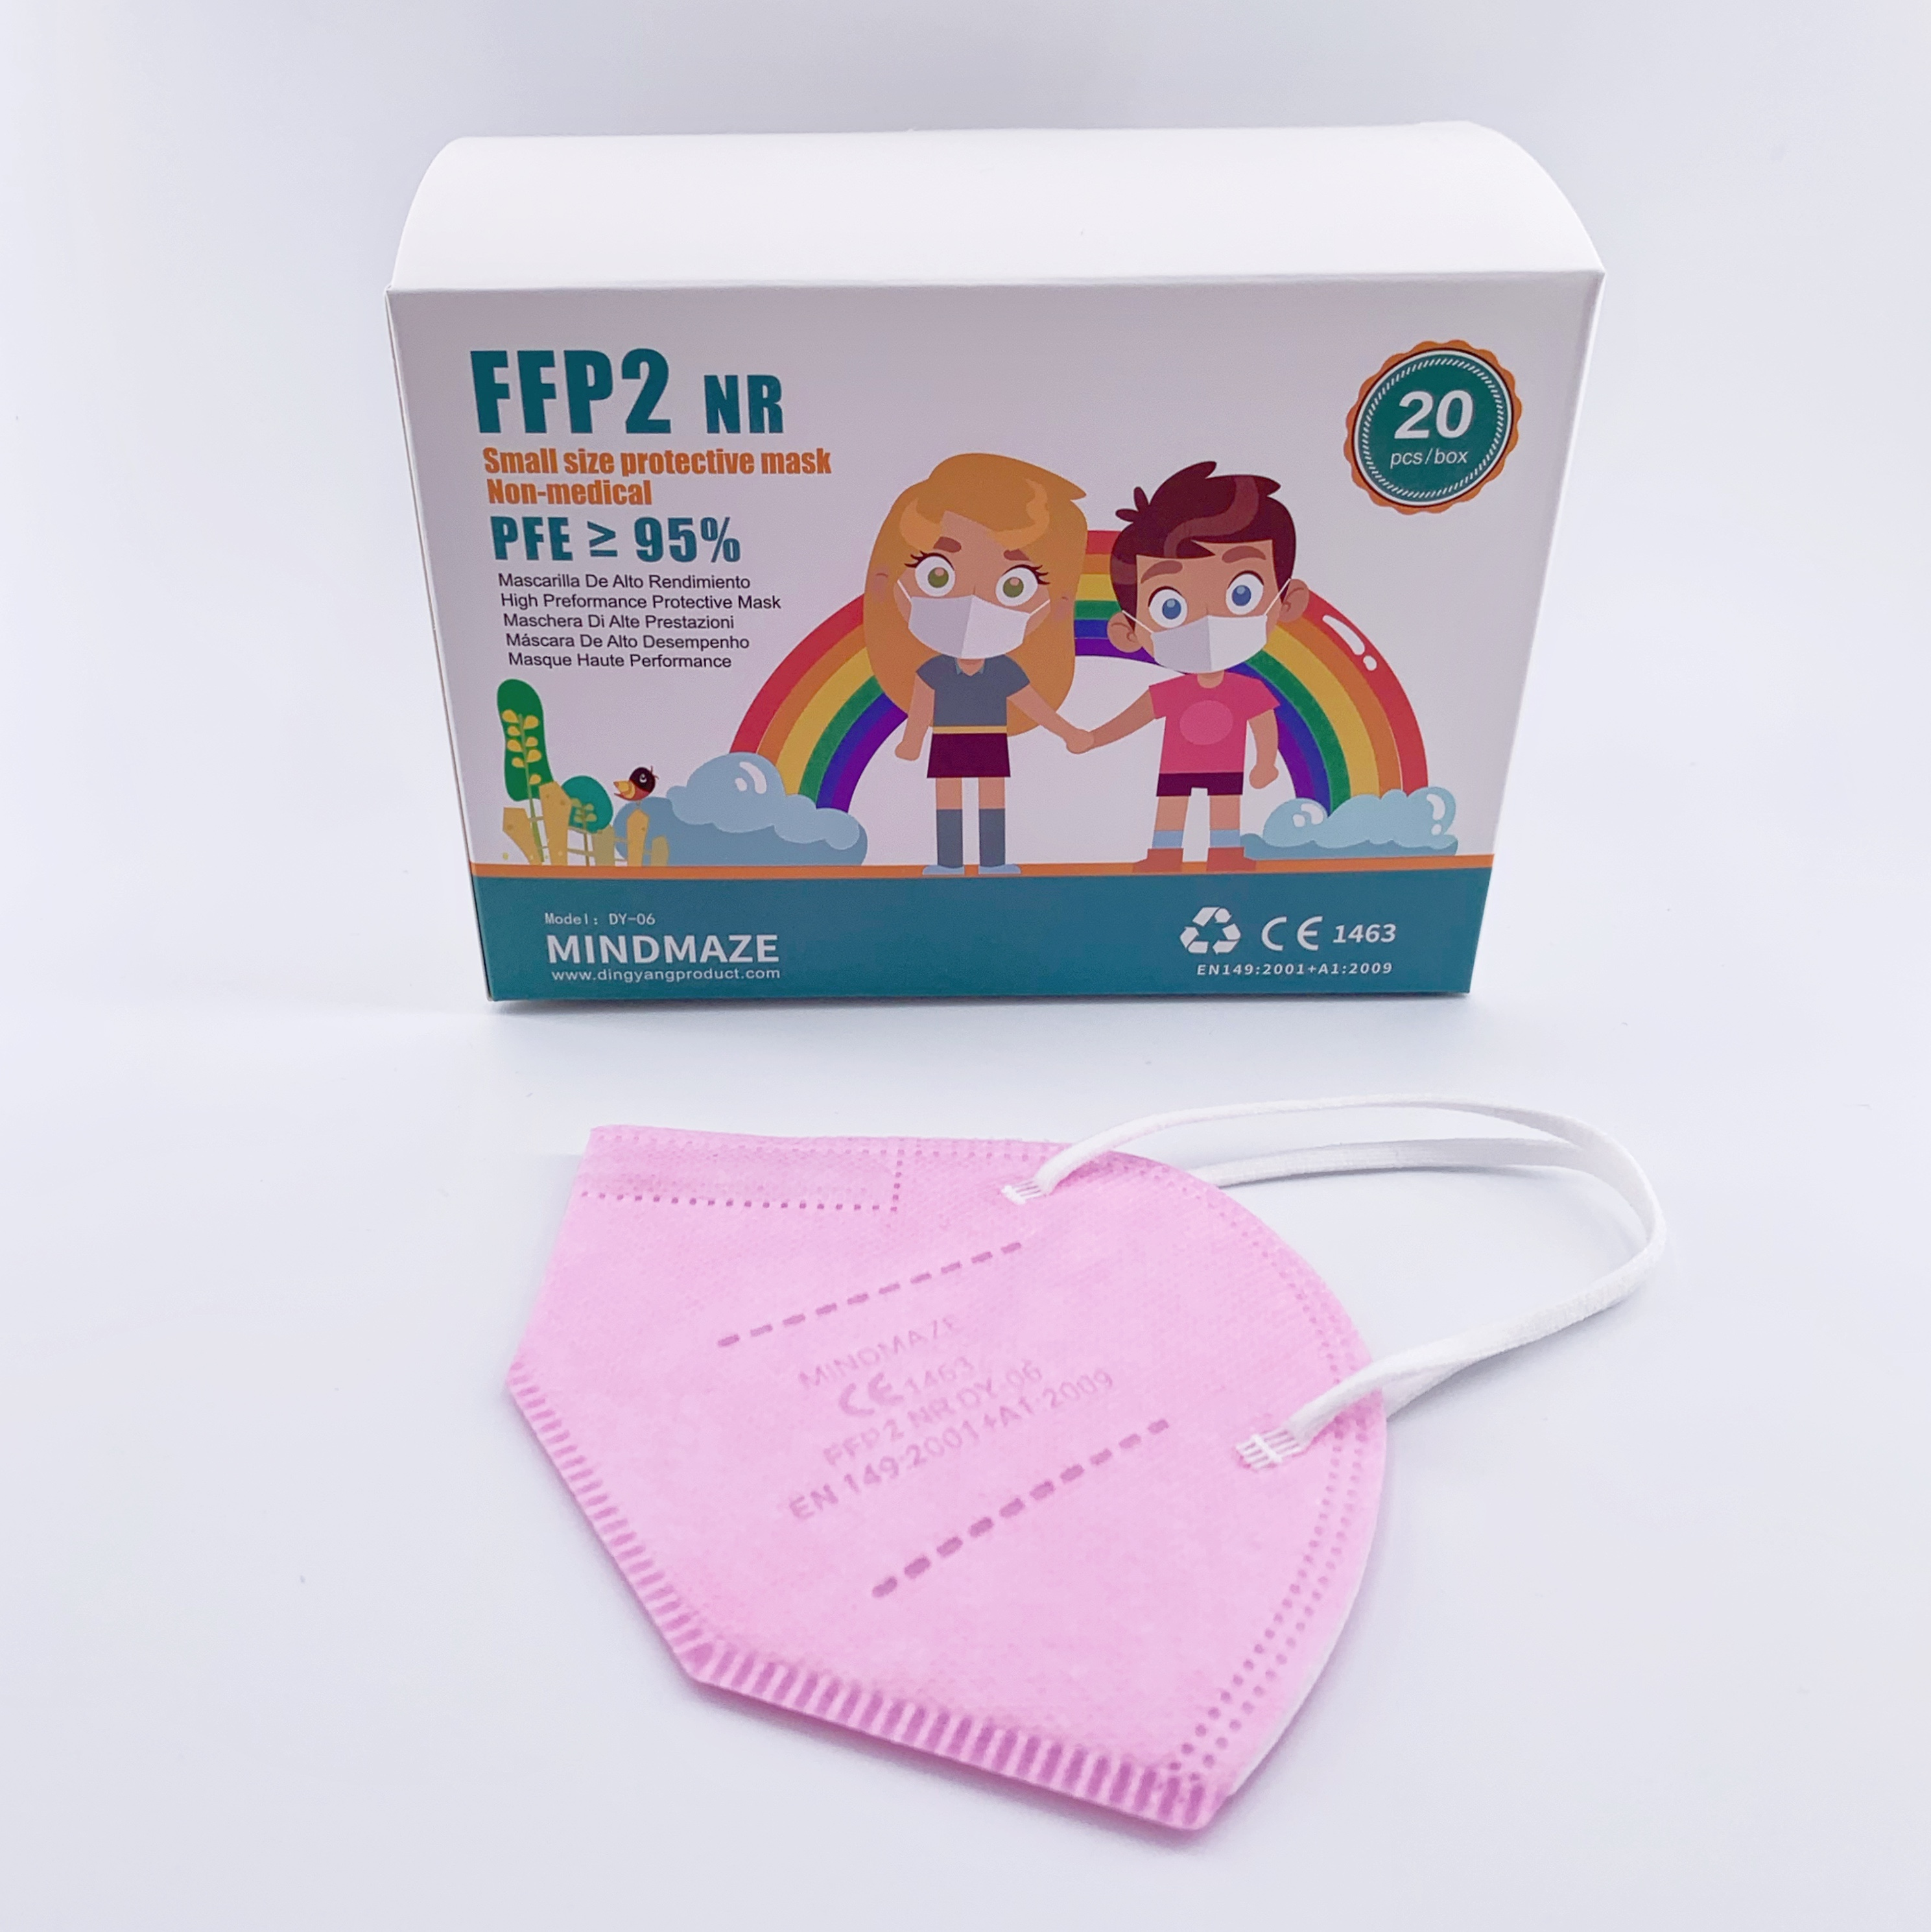 Pink Little one FFP2 PROTECTIVE MASK(图1)